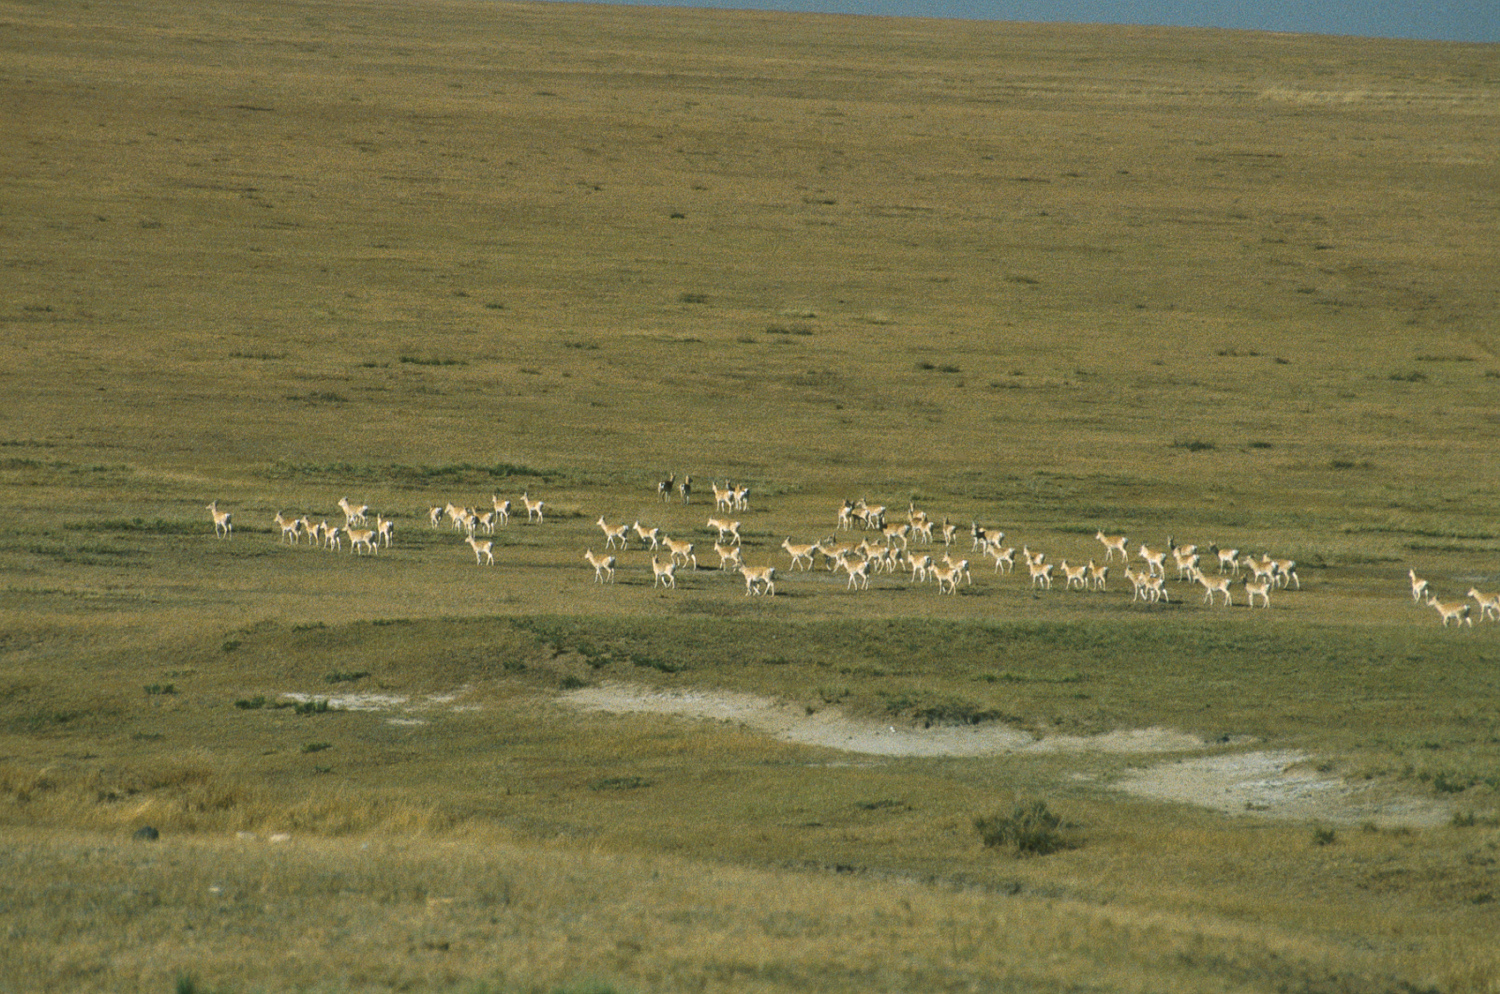 Mongolian gazelles in eastern steppes of Mongolia